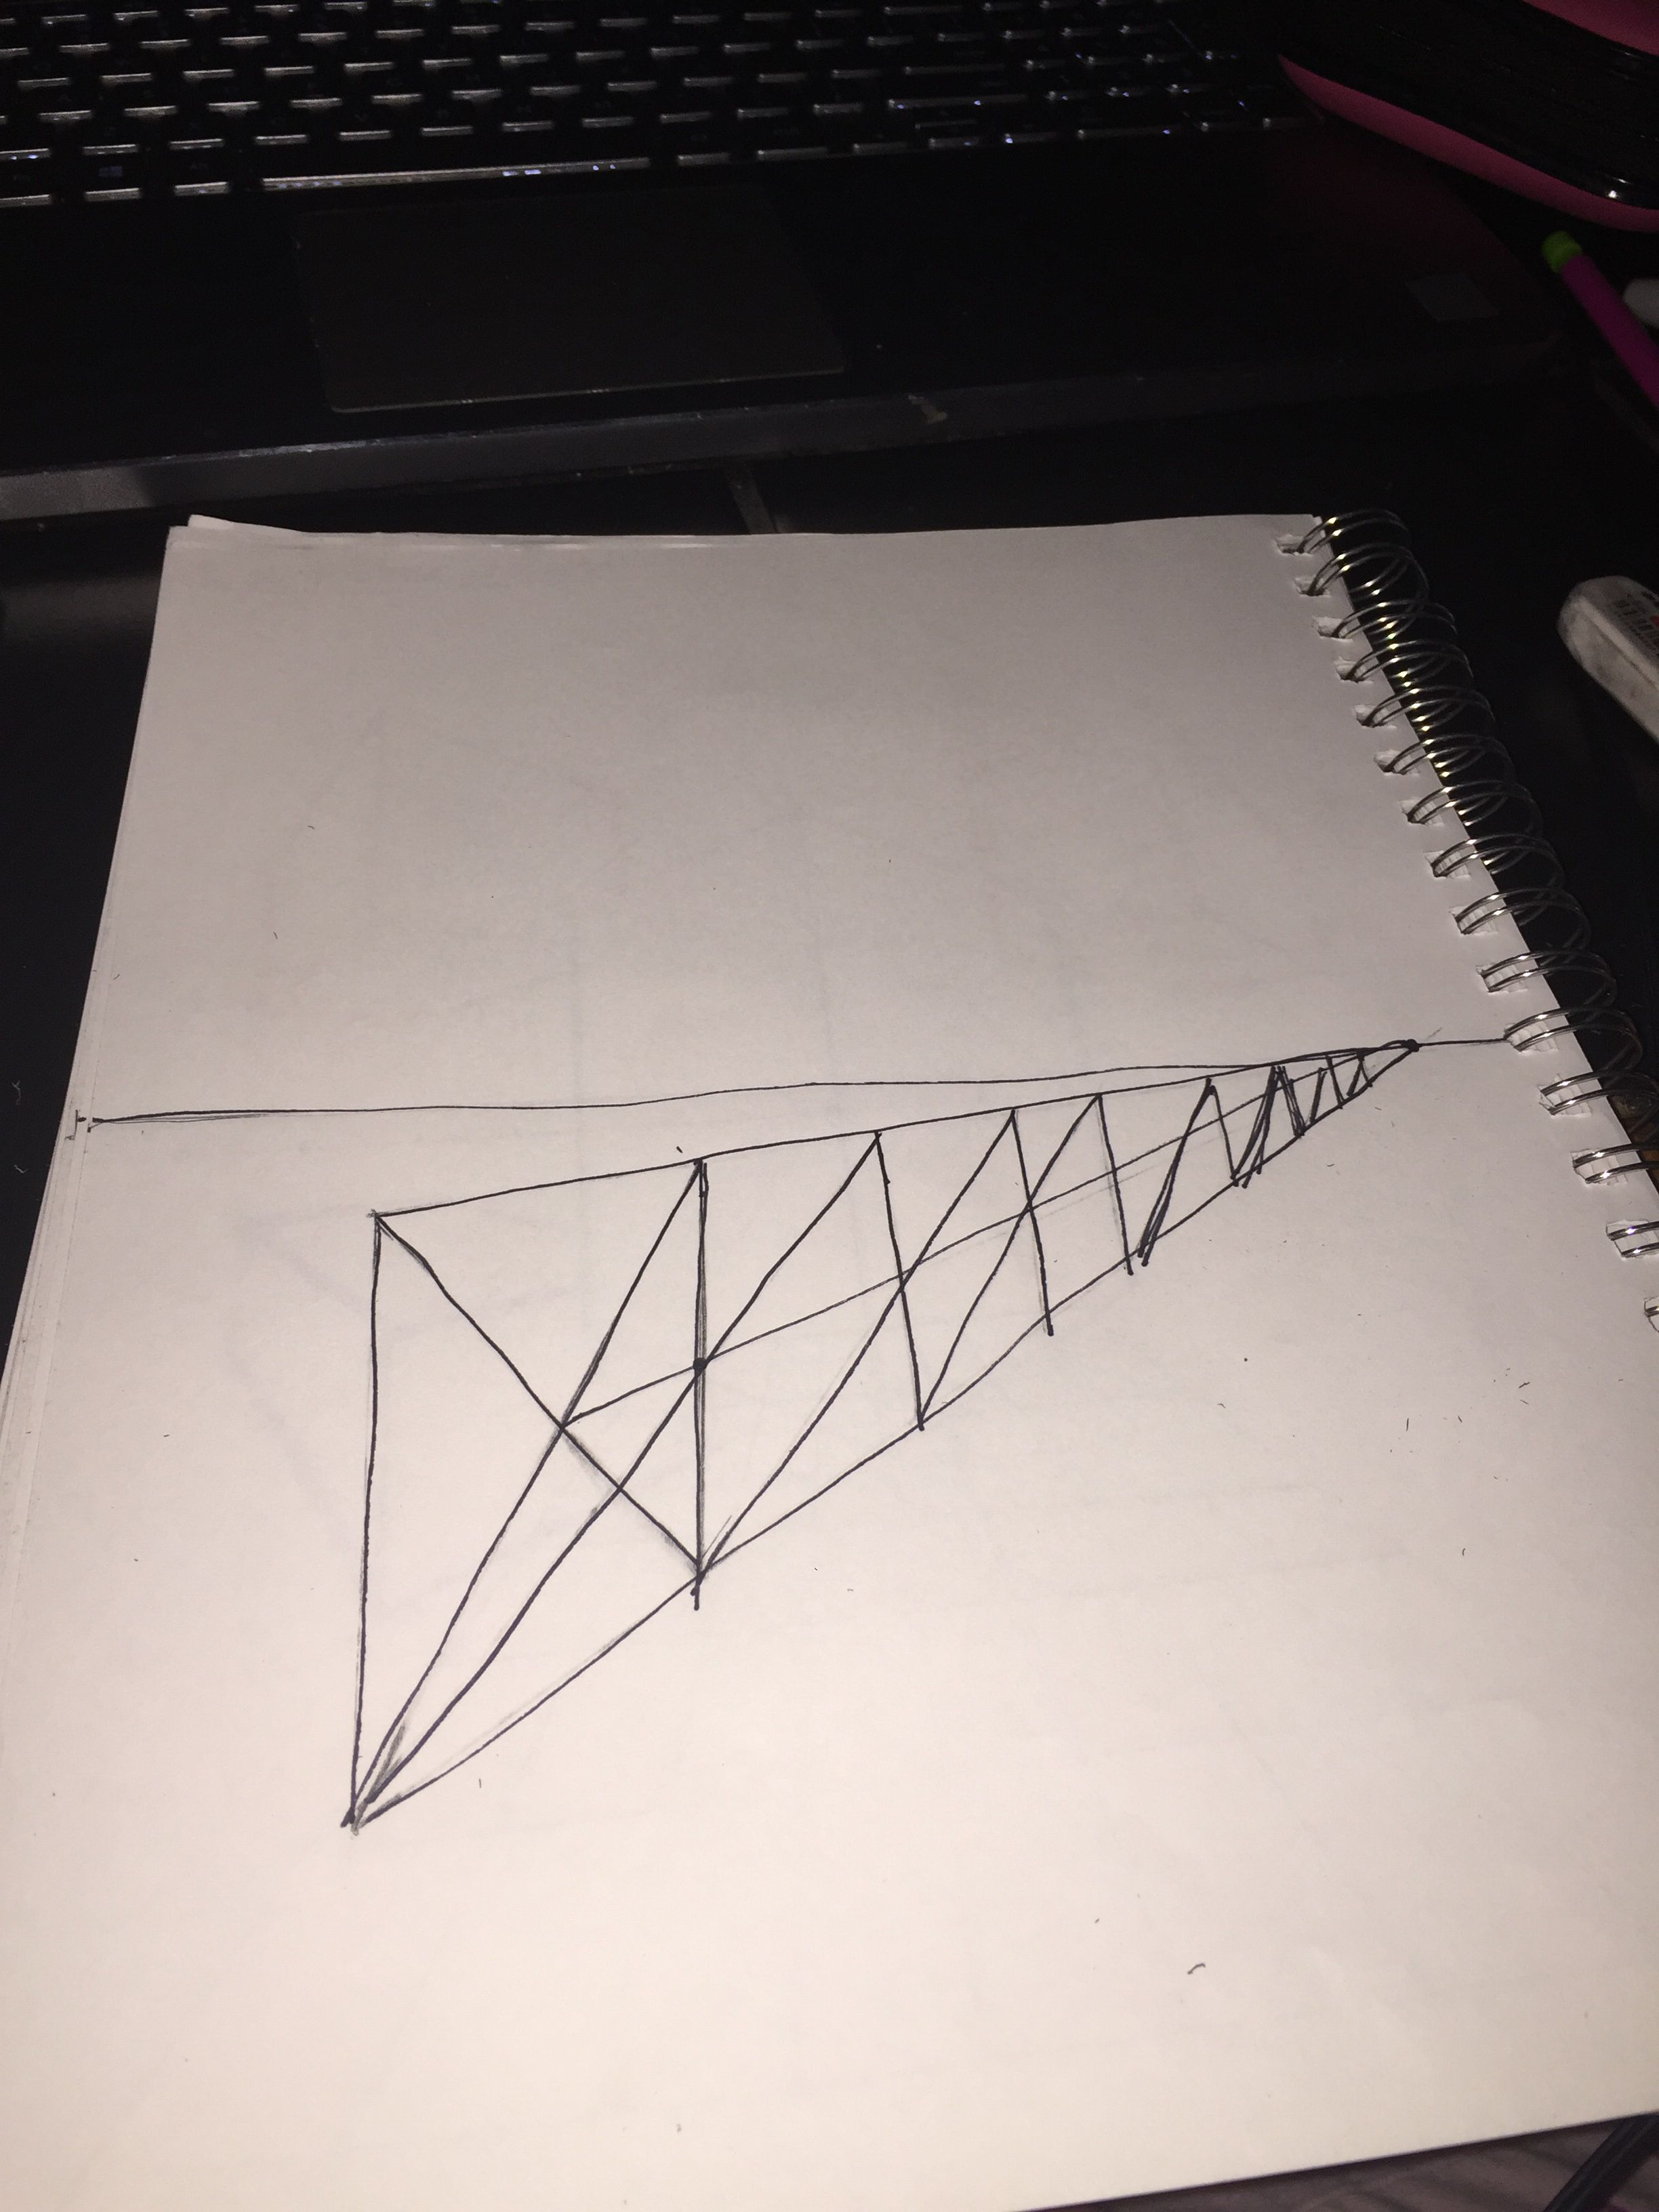 Drawing Fence Posts In Perspective Worksheet